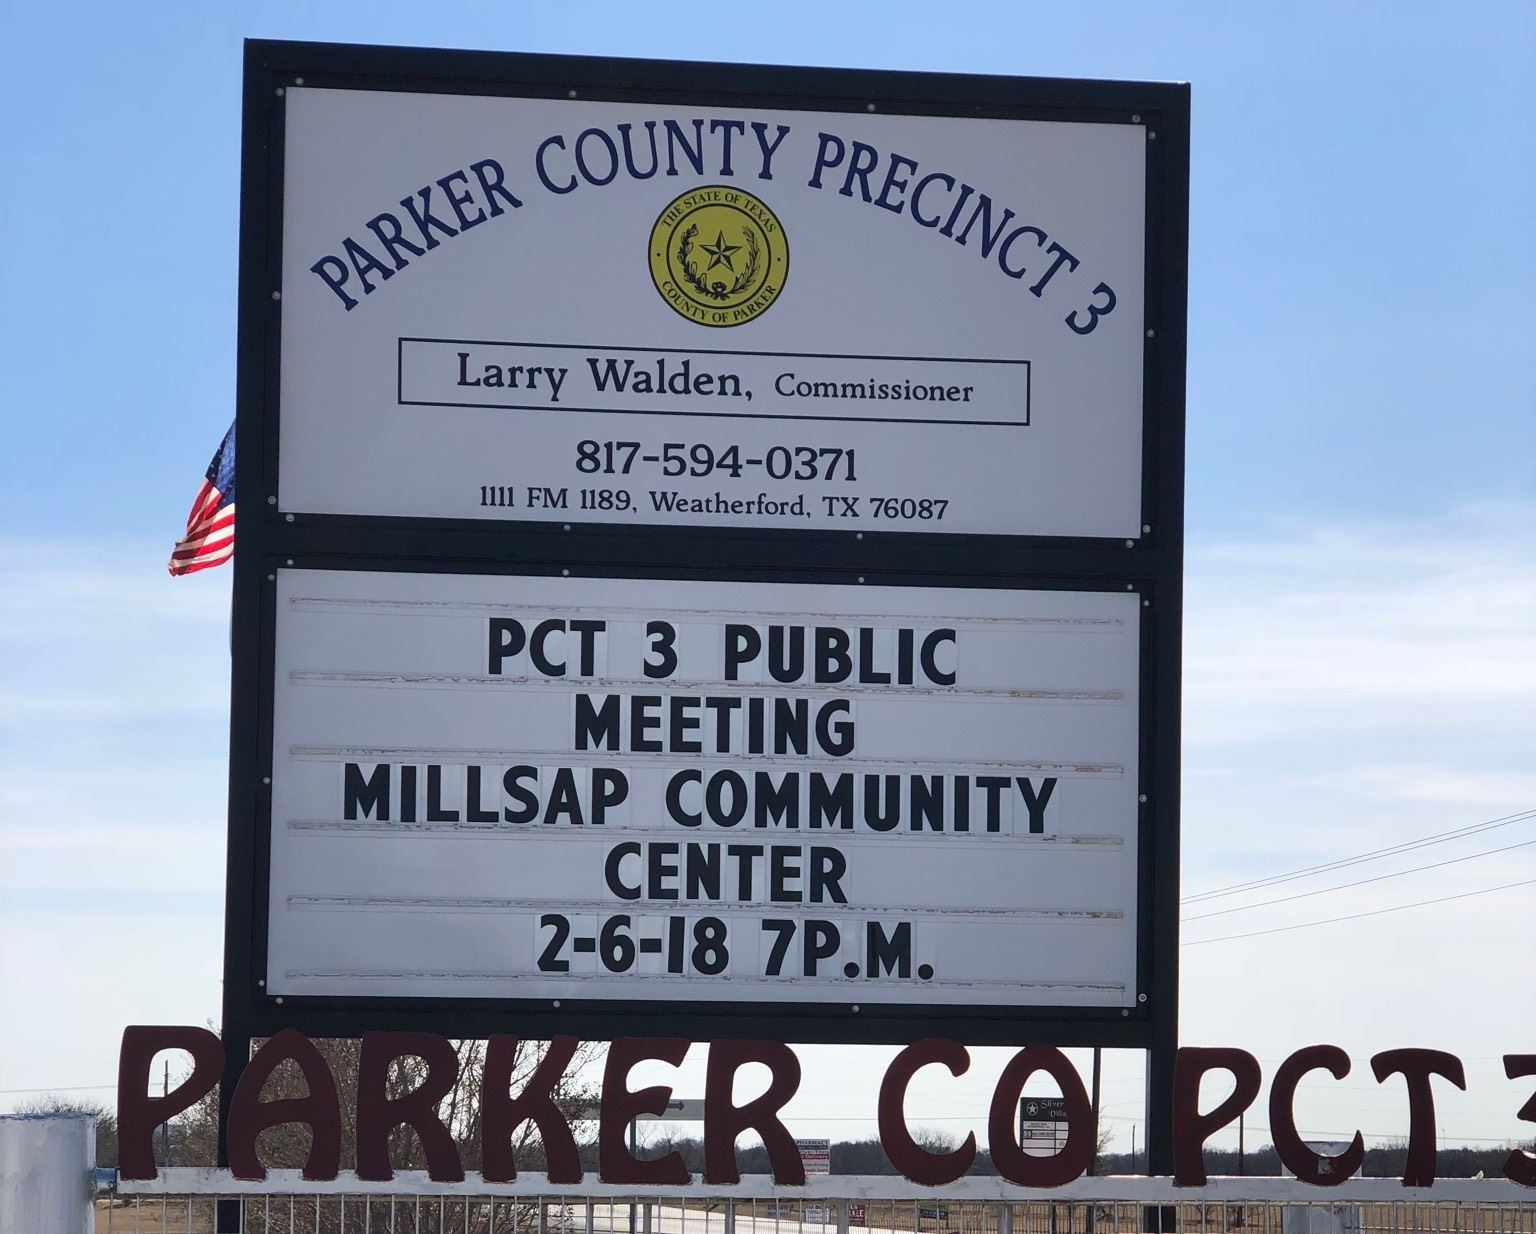 Image Of A Sign Regarding Upcoming Precinct 3 Public Meeting